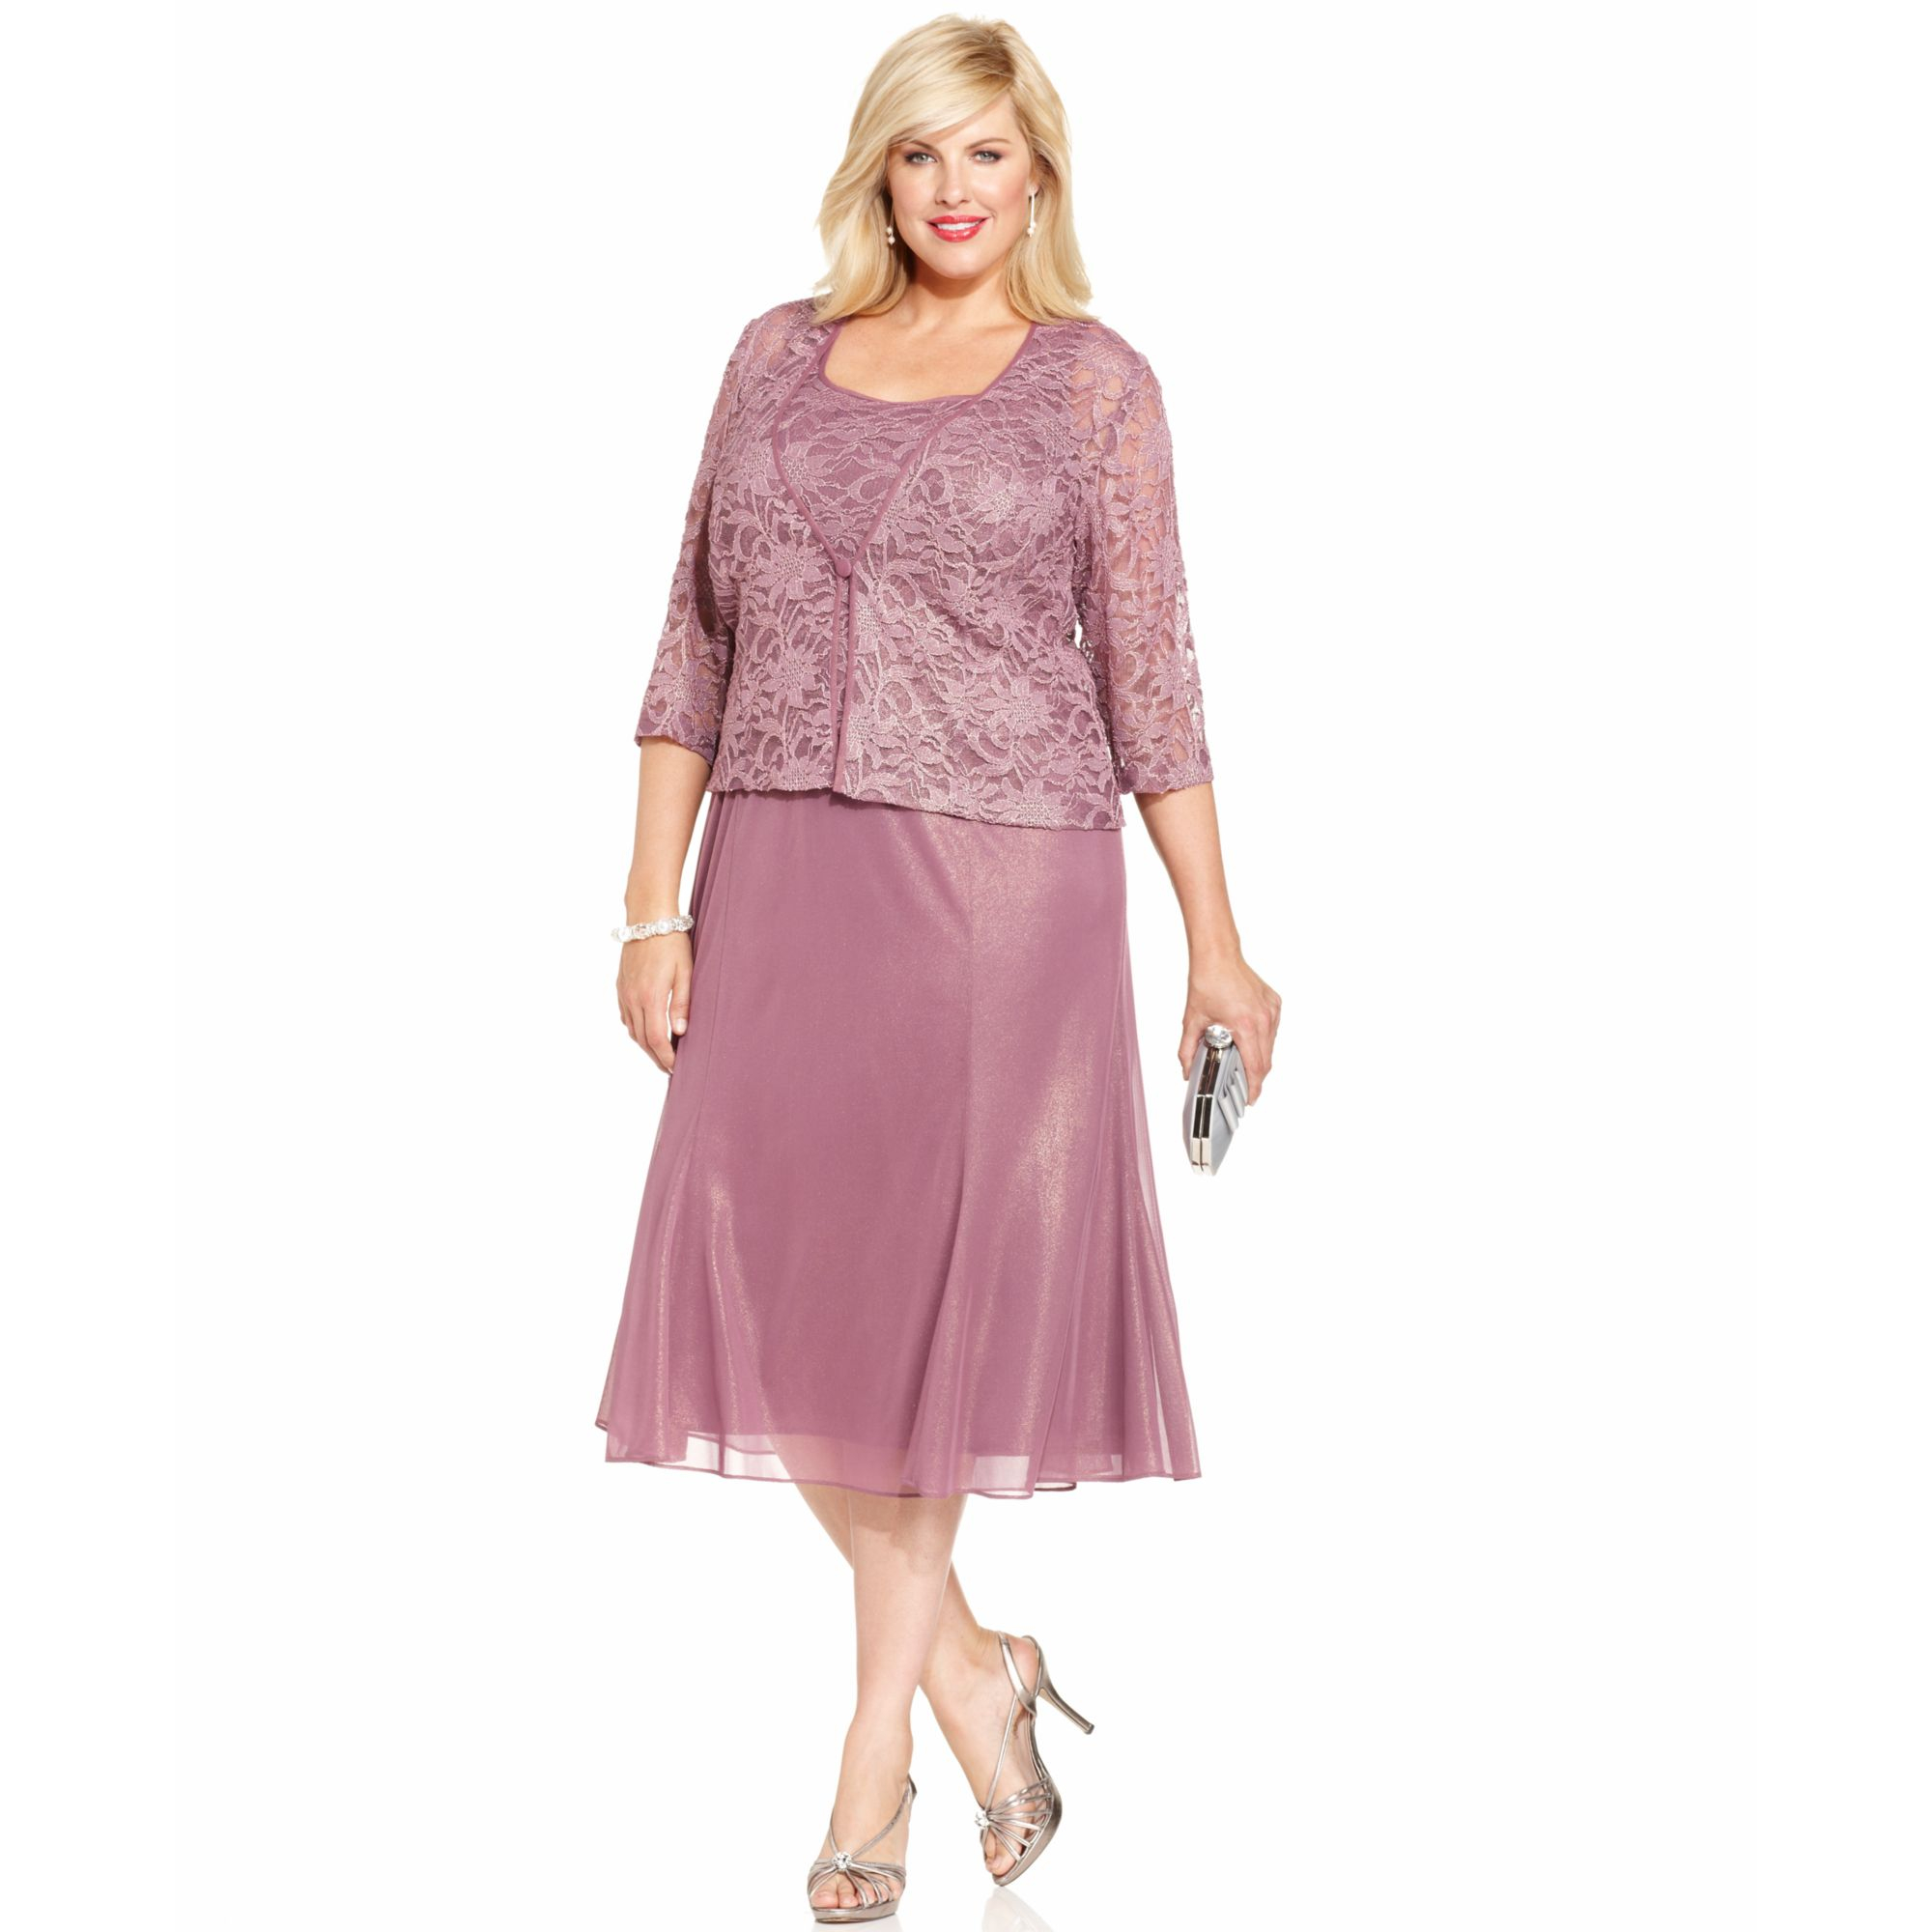 750bbaebdd6d3 Lyst - Alex Evenings Plus Size Shimmer Lace Dress and Jacket in Pink